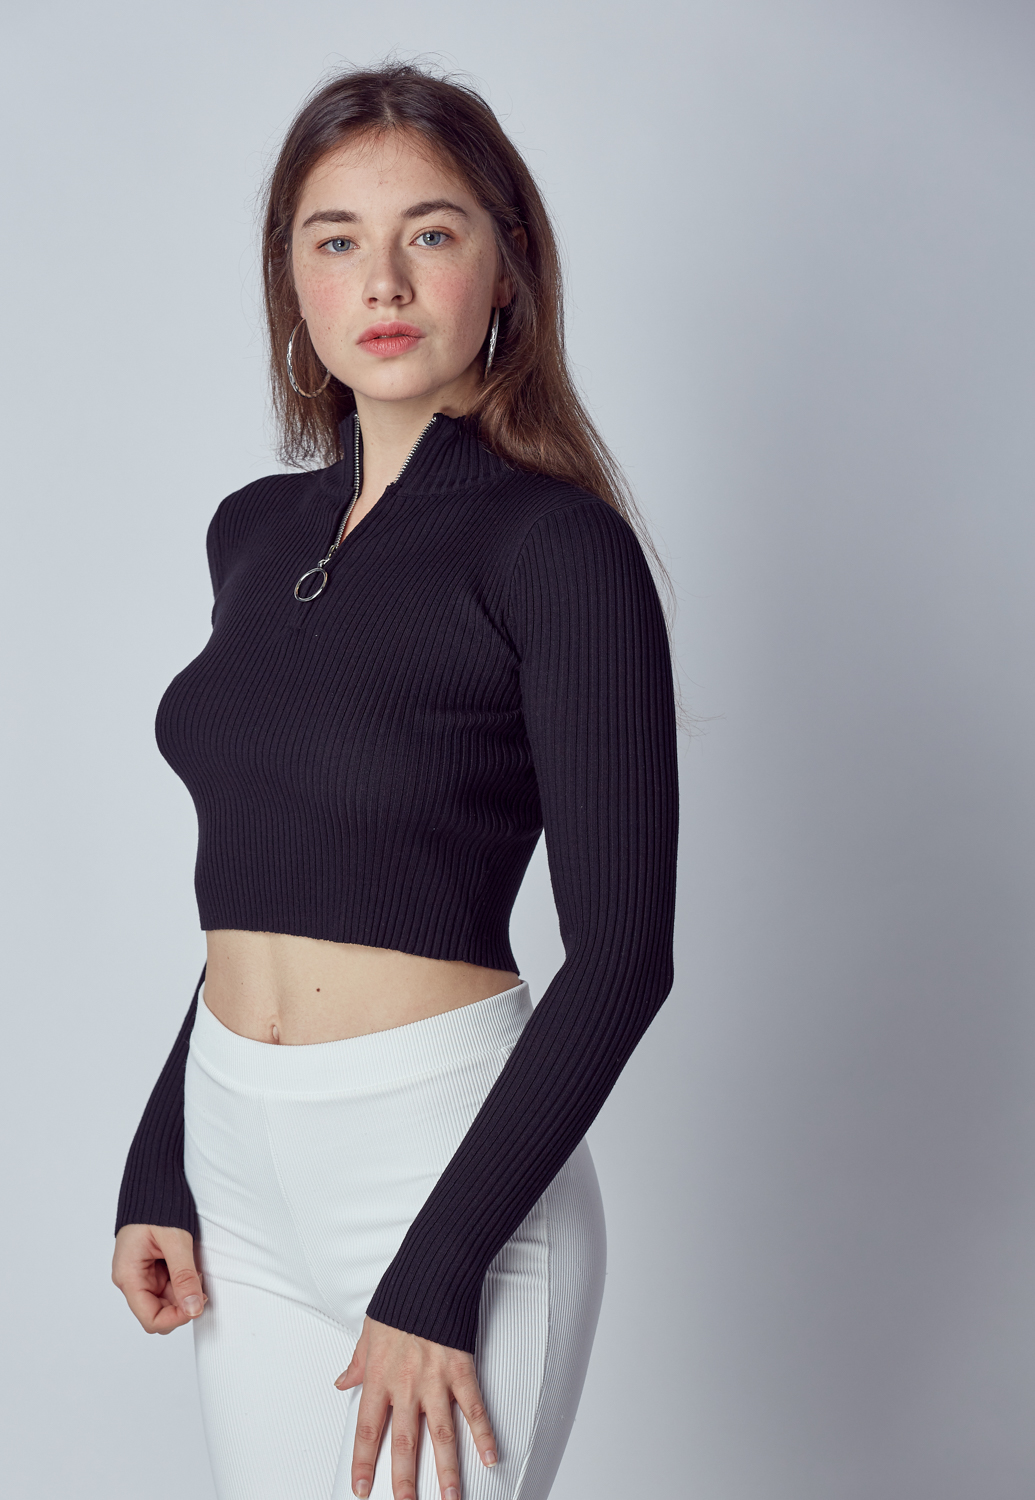 O-Ring Zipper Front Rib-Knit Crop Top